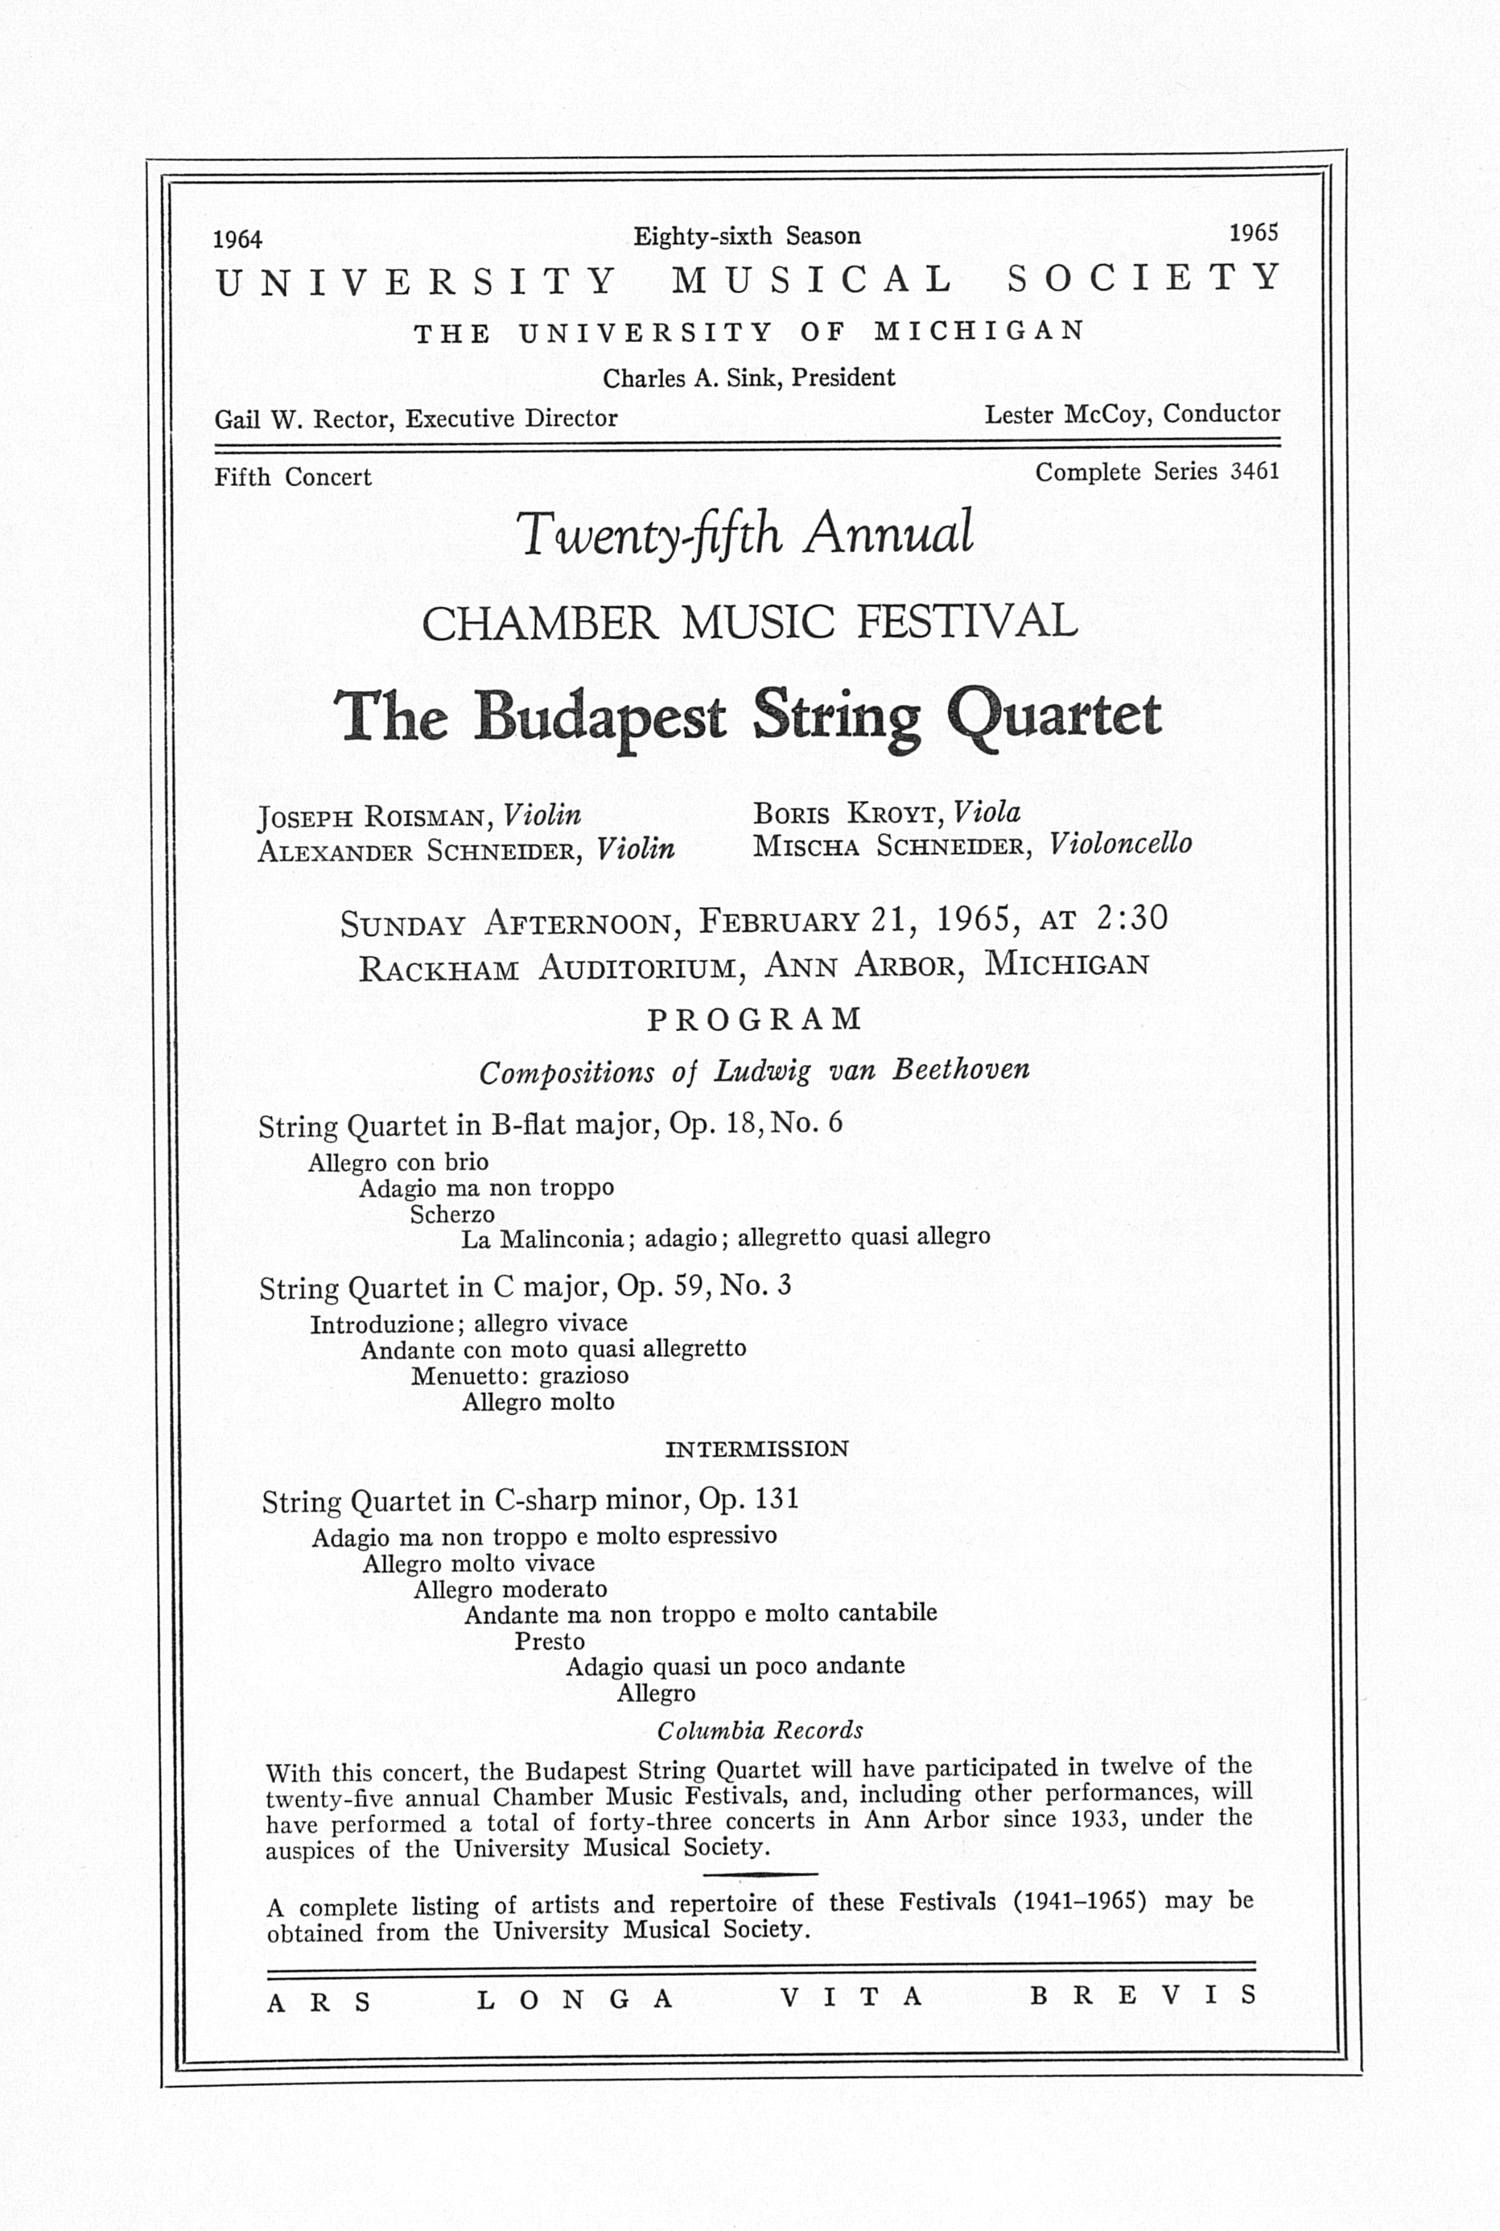 UMS Concert Program, February 21, 1965: Twenty-fifth Annual Chamber Music Festival -- The Budapest String Quartet image